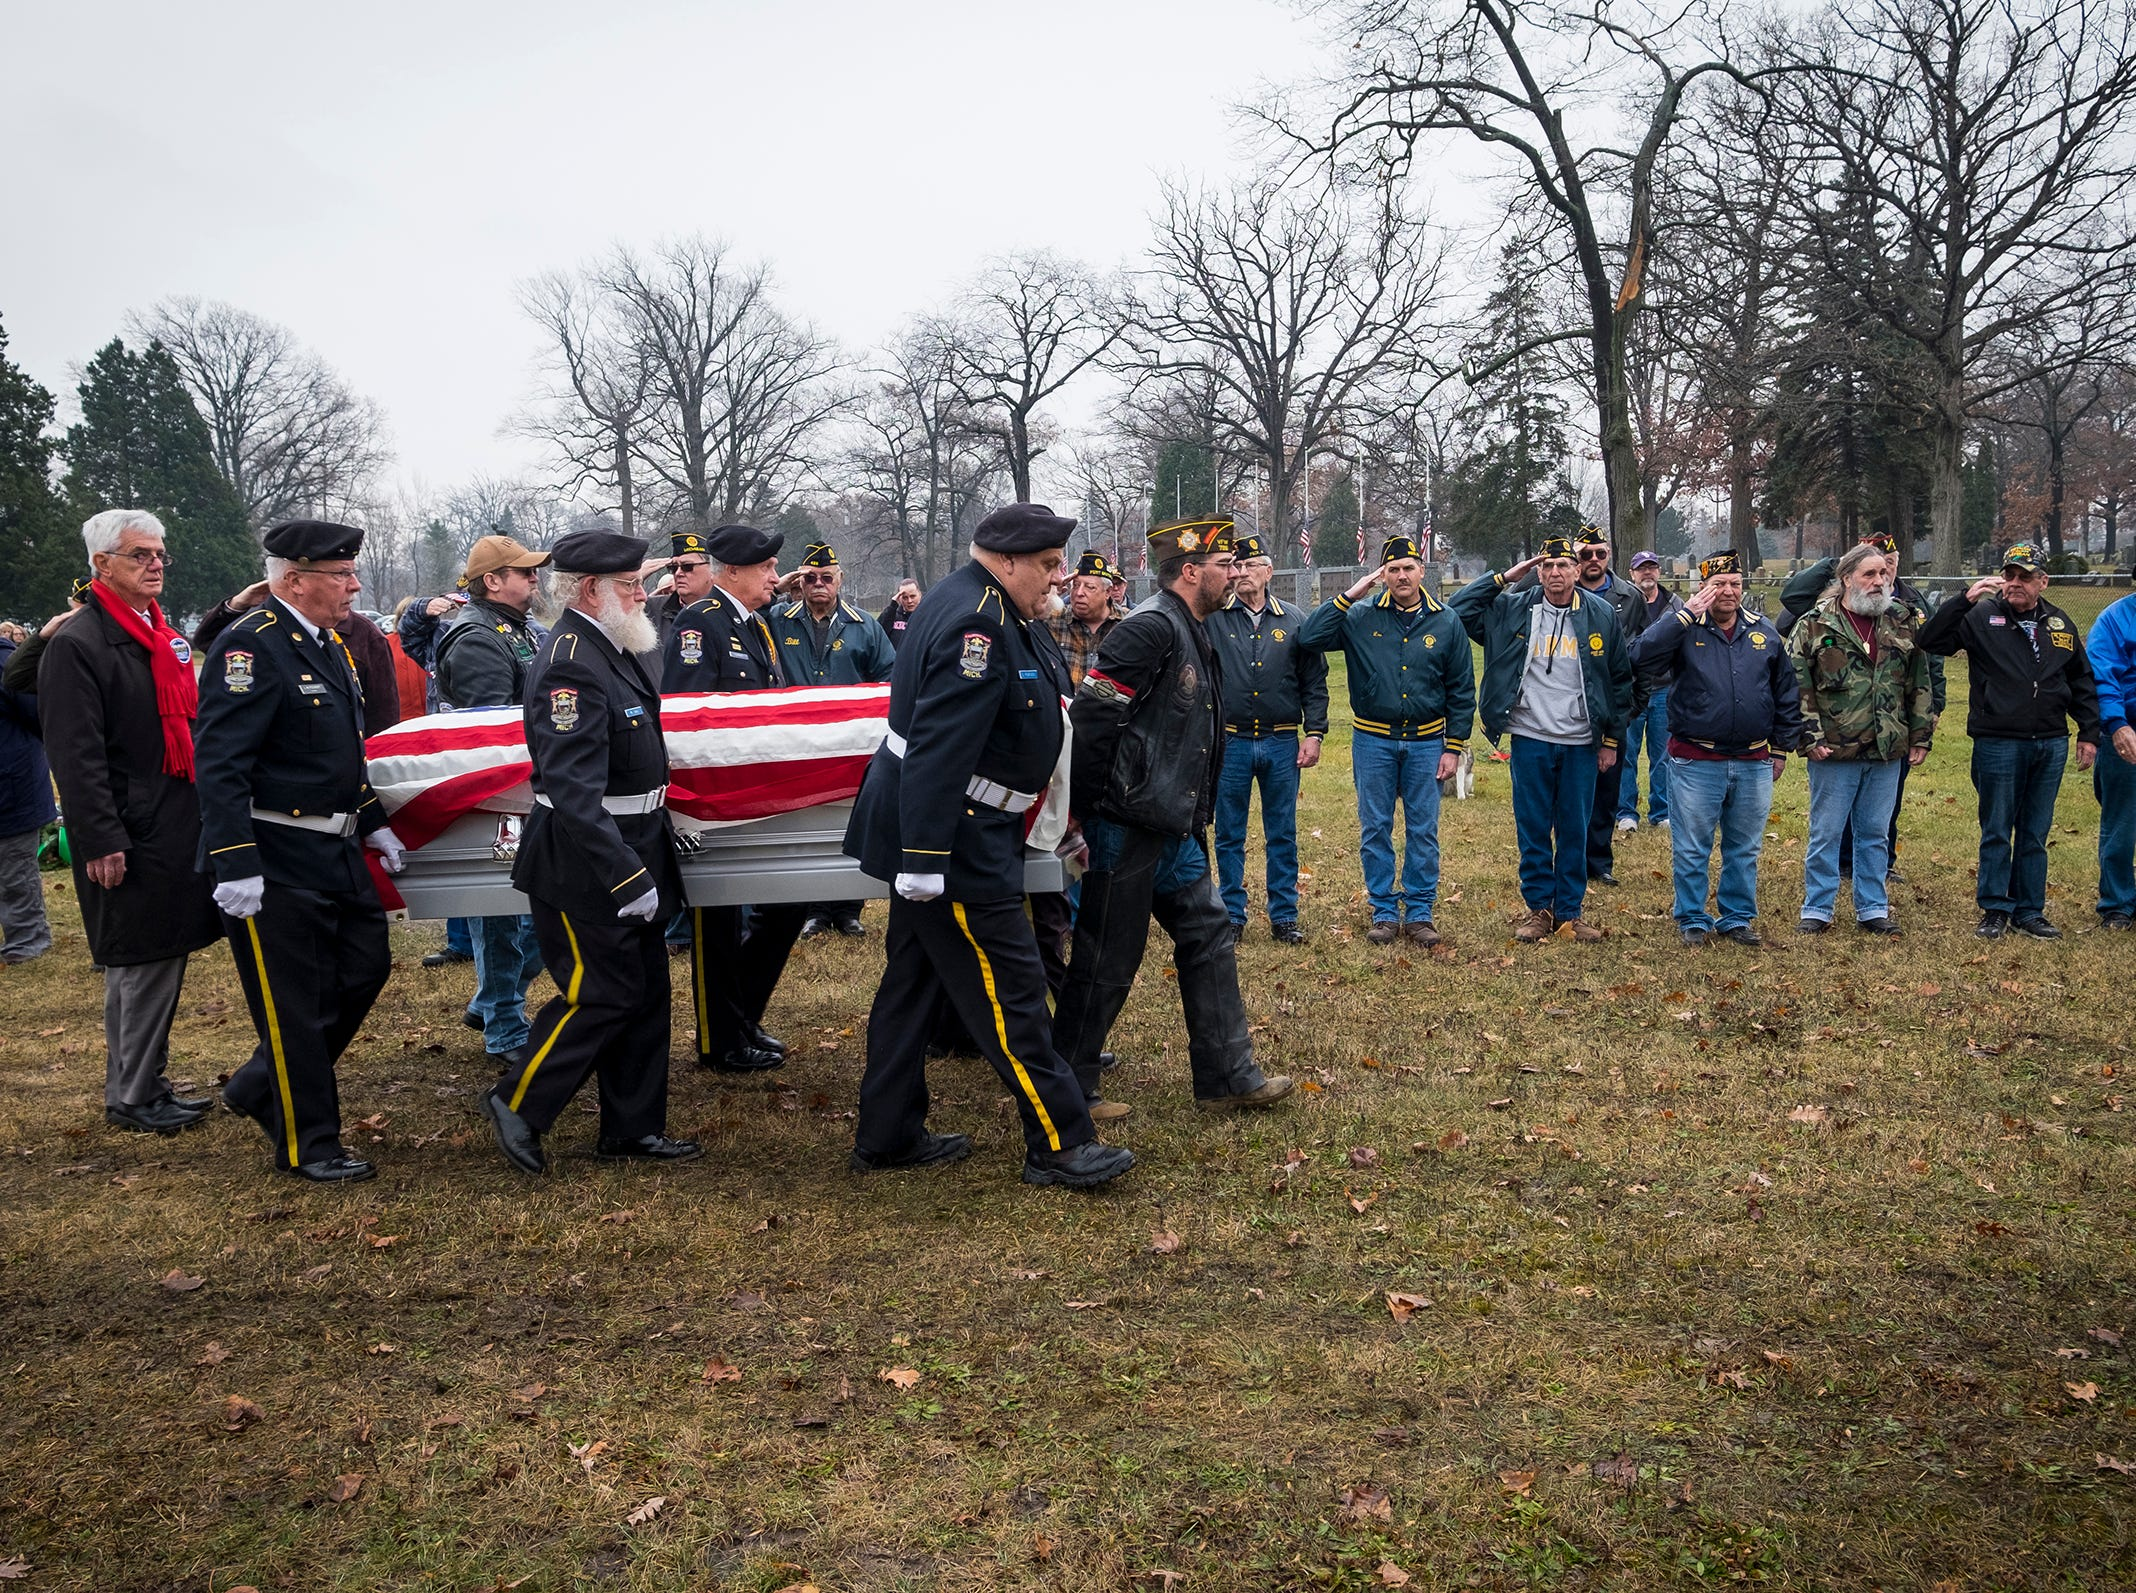 Veterans in attendance hold a salute while the casket of Joseph A. Humphries is carried to his gravesite Friday, Dec. 14, 2018. Humphries, a U.S. Army veteran, was born and lived in Port Huron but has no known relatives in the area.